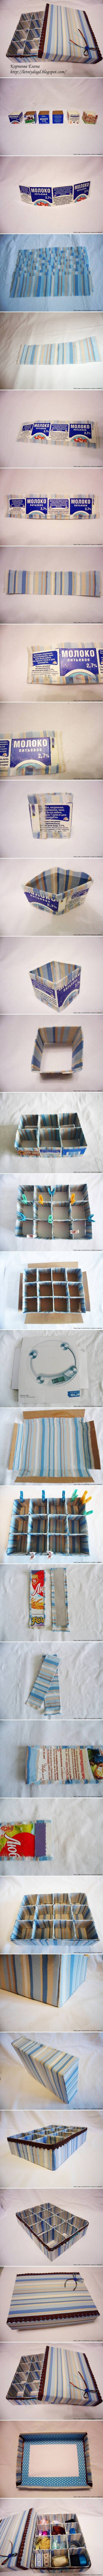 How to make storage units step by step DIY tutorial instructions